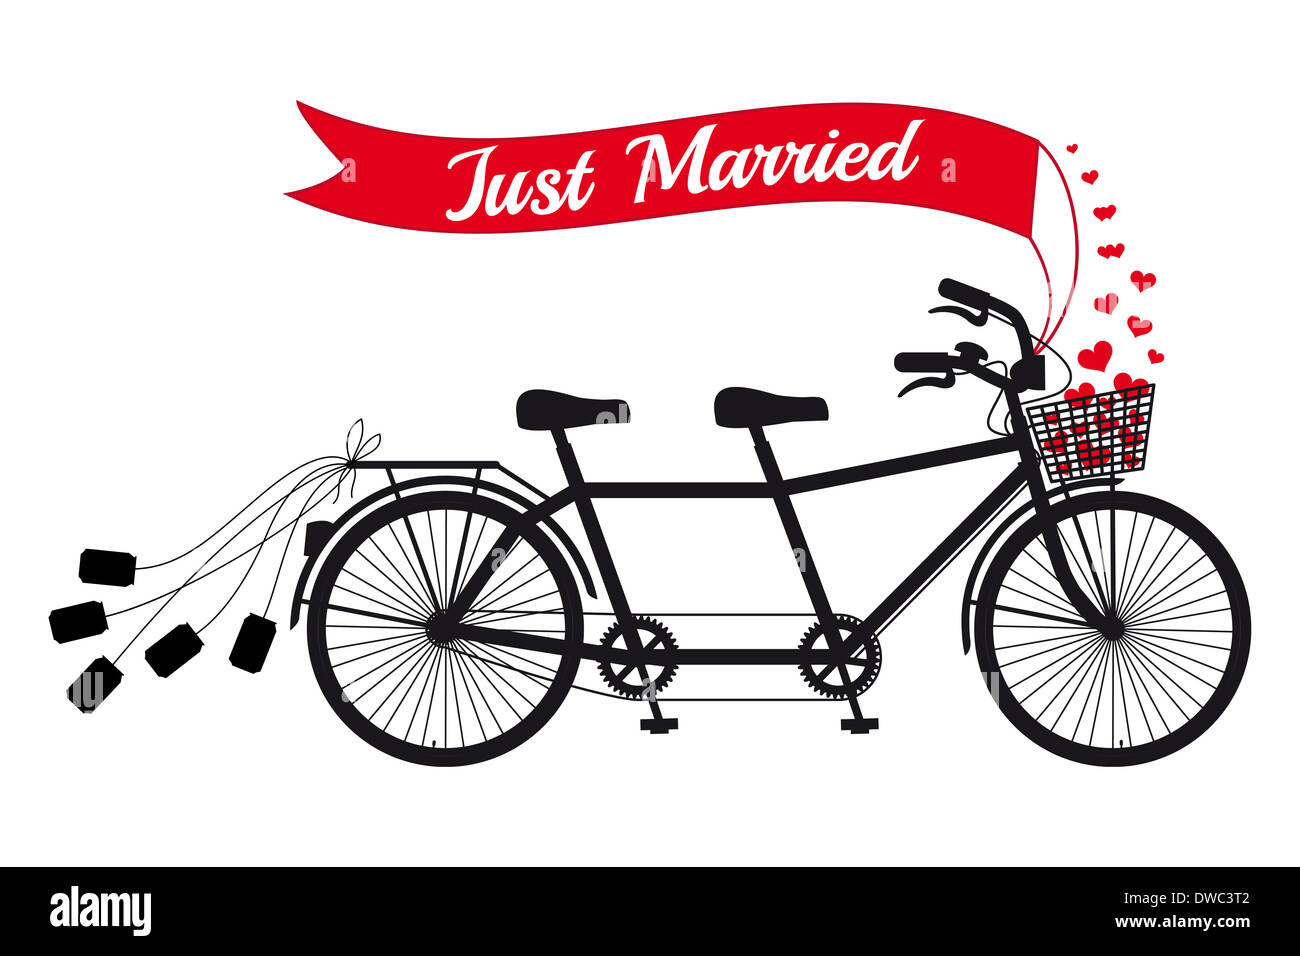 just married, wedding tandem bicycle - Stock Image